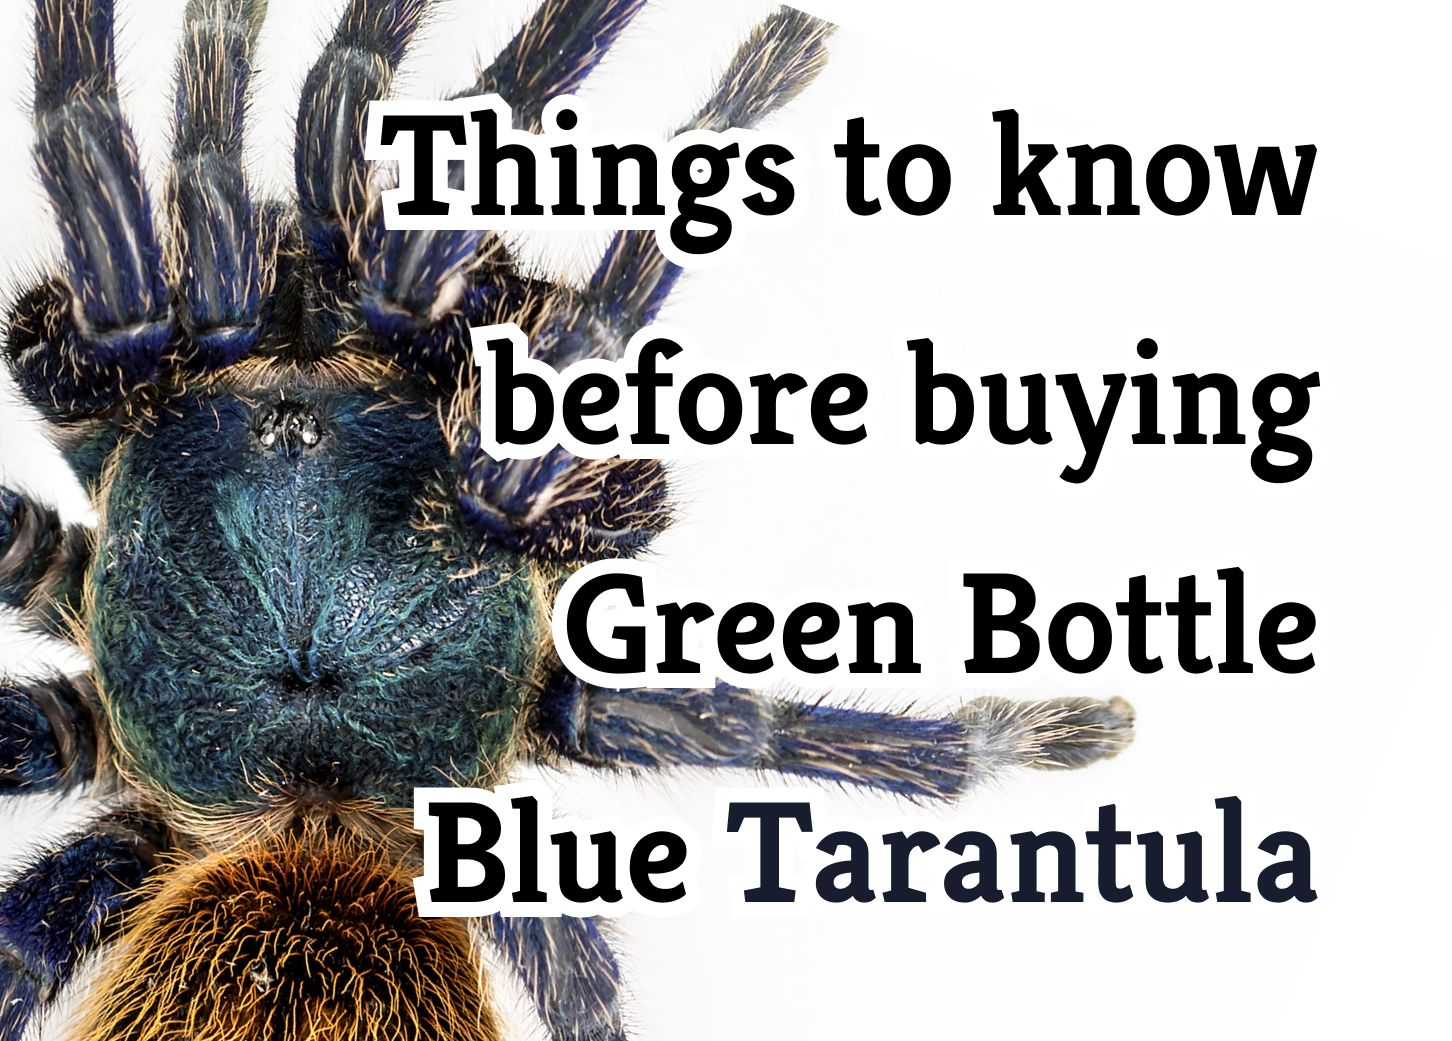 23 Crucial Things to Know About the Green Bottle Blue Tarantula